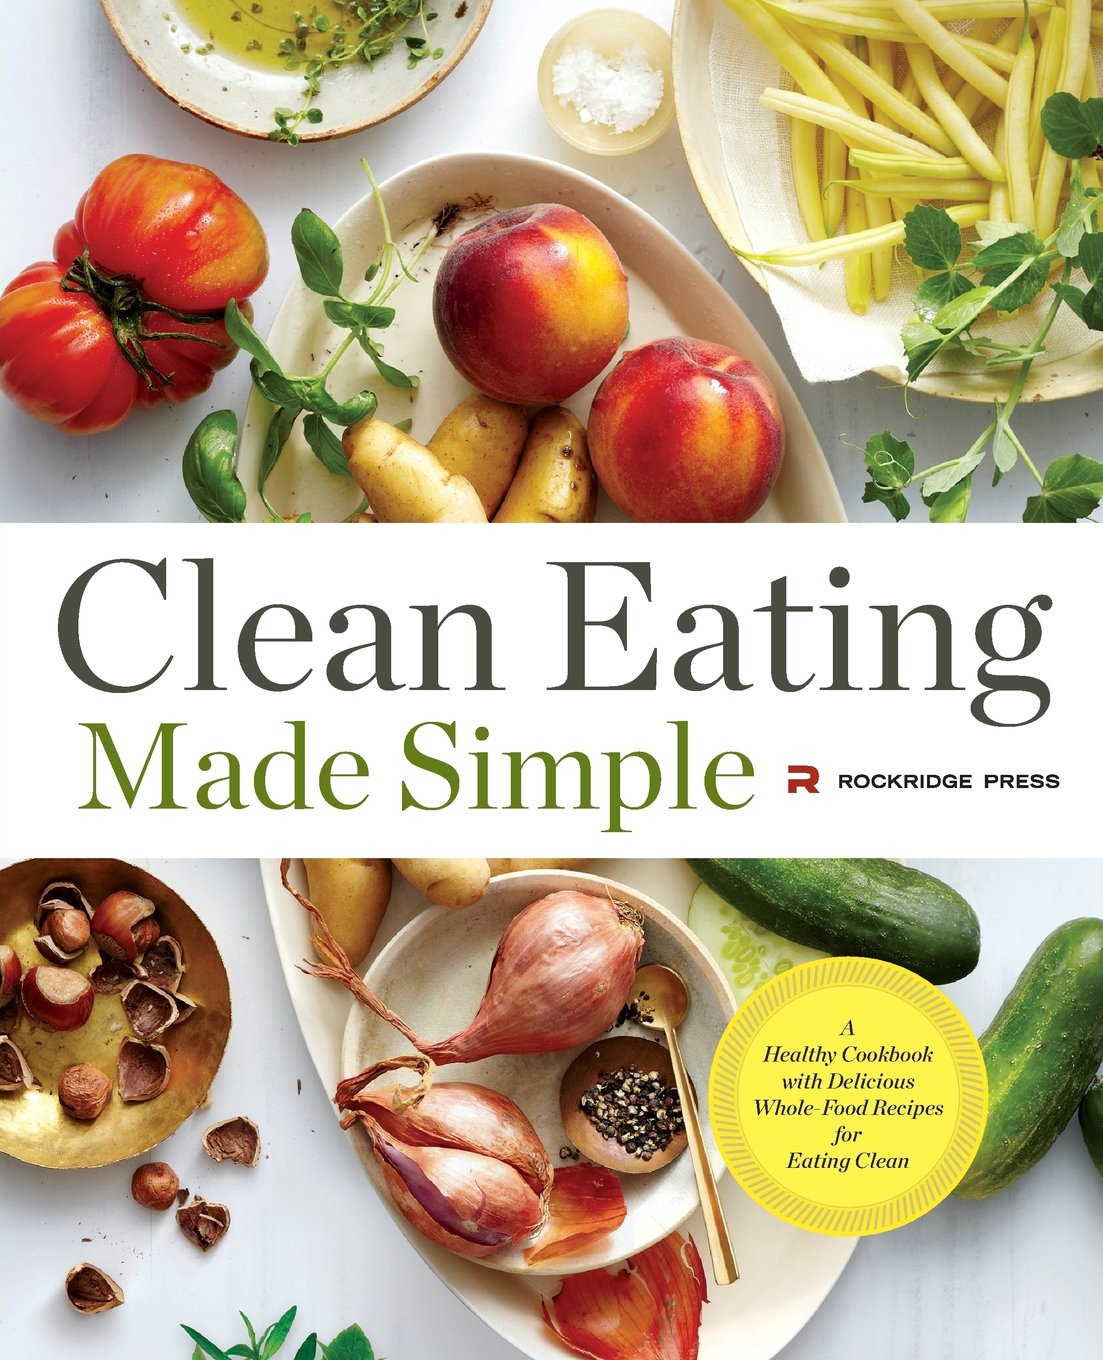 Clean Eating Made Simple Whole Food product image